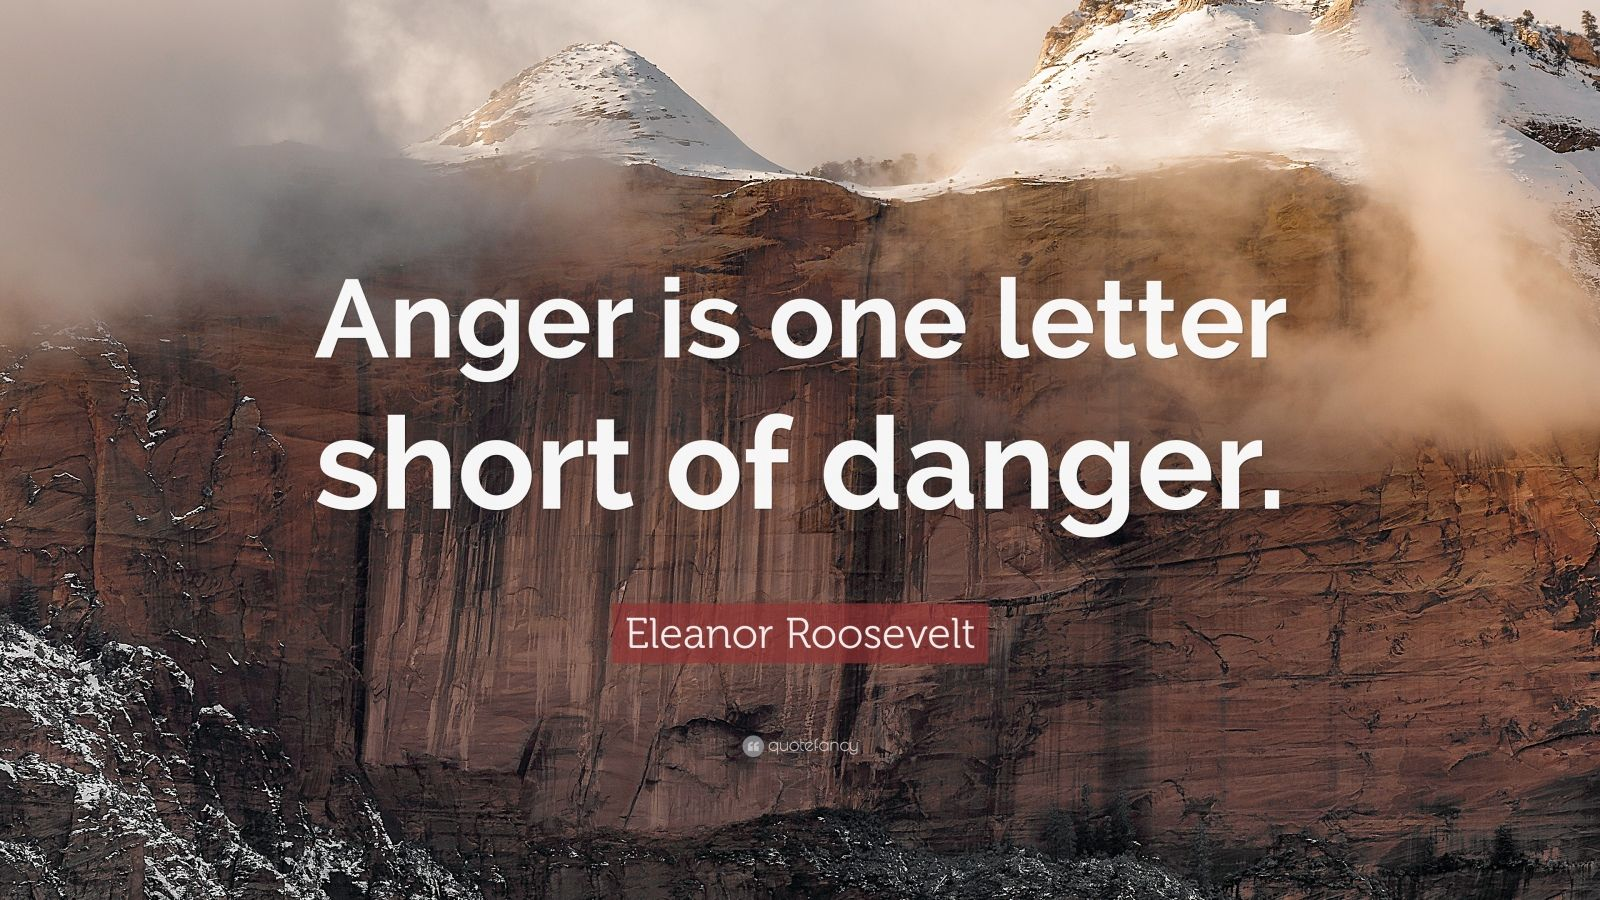 Wallpaper With Quotes Attitude Eleanor Roosevelt Quote Anger Is One Letter Short Of